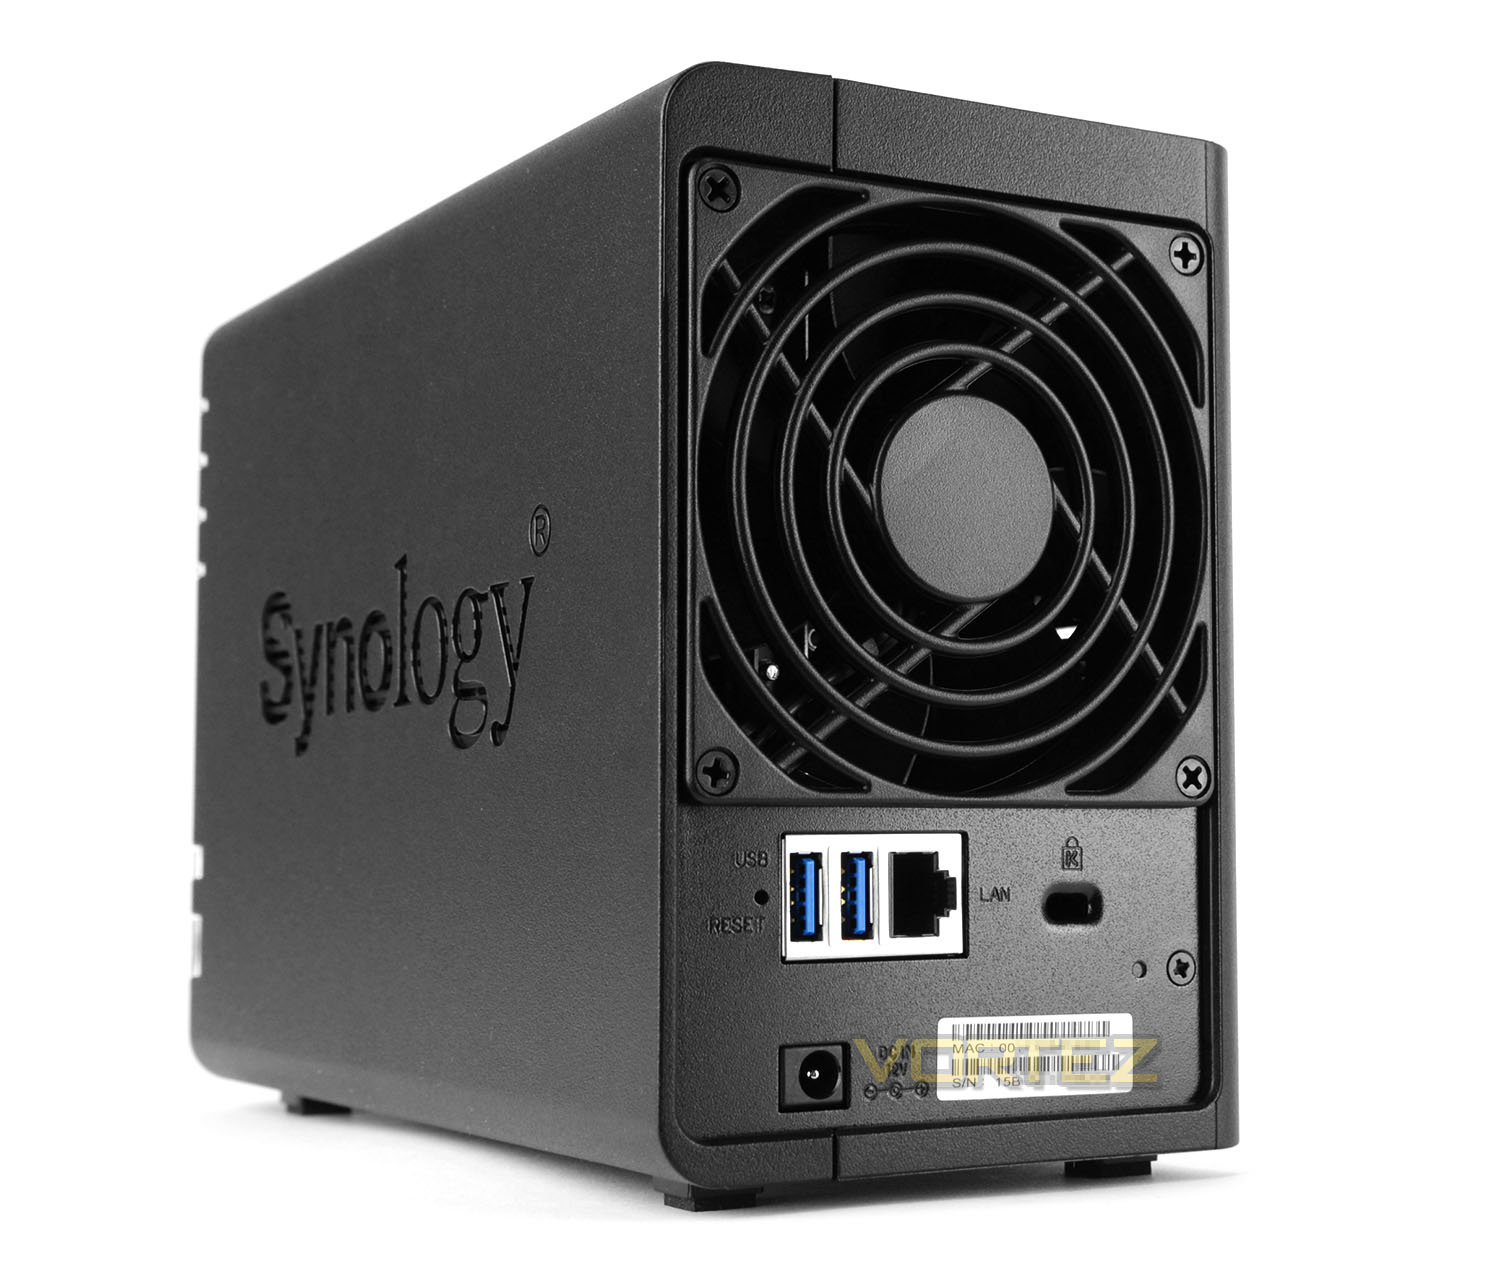 Synology DS216 (with DSM 6 0) Review - Closer Look